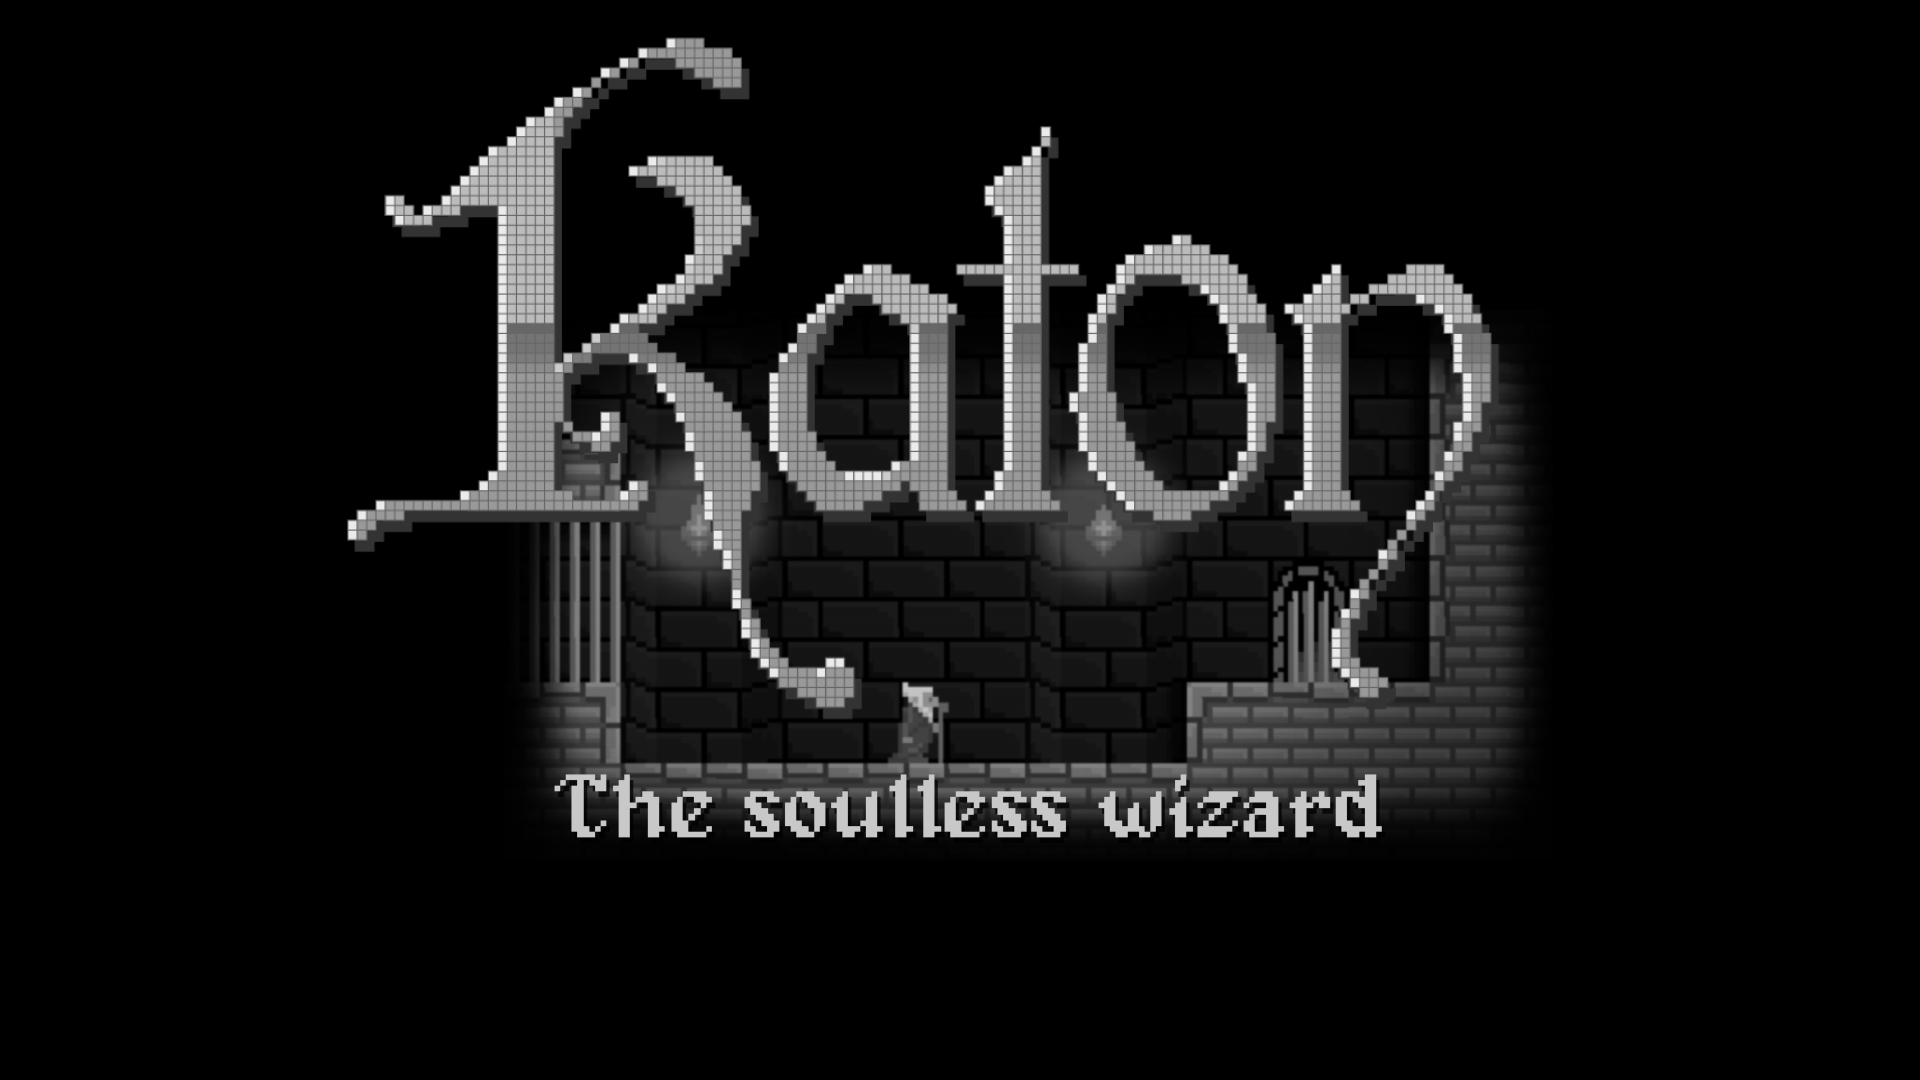 Katon the soulless wizard